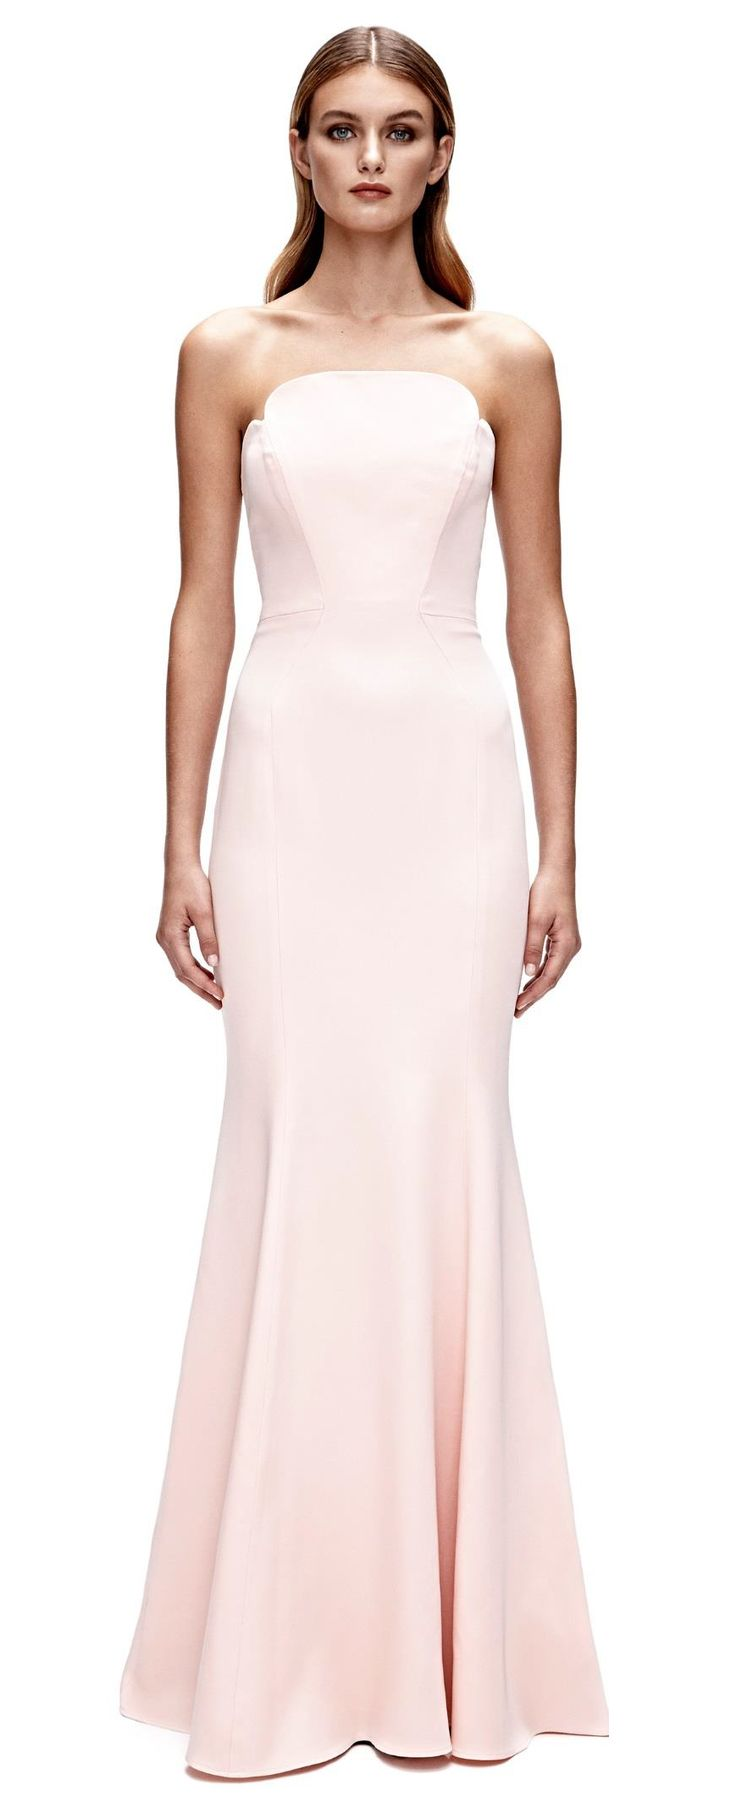 Jill Jill Stuart Pink Gown A dramatic hourglass strapless gown with artfully sculpted neckline and seaming detail. Boning all around. Silicone gel elastic on inside top edge. Center back metal zipper with hook and eye on top.